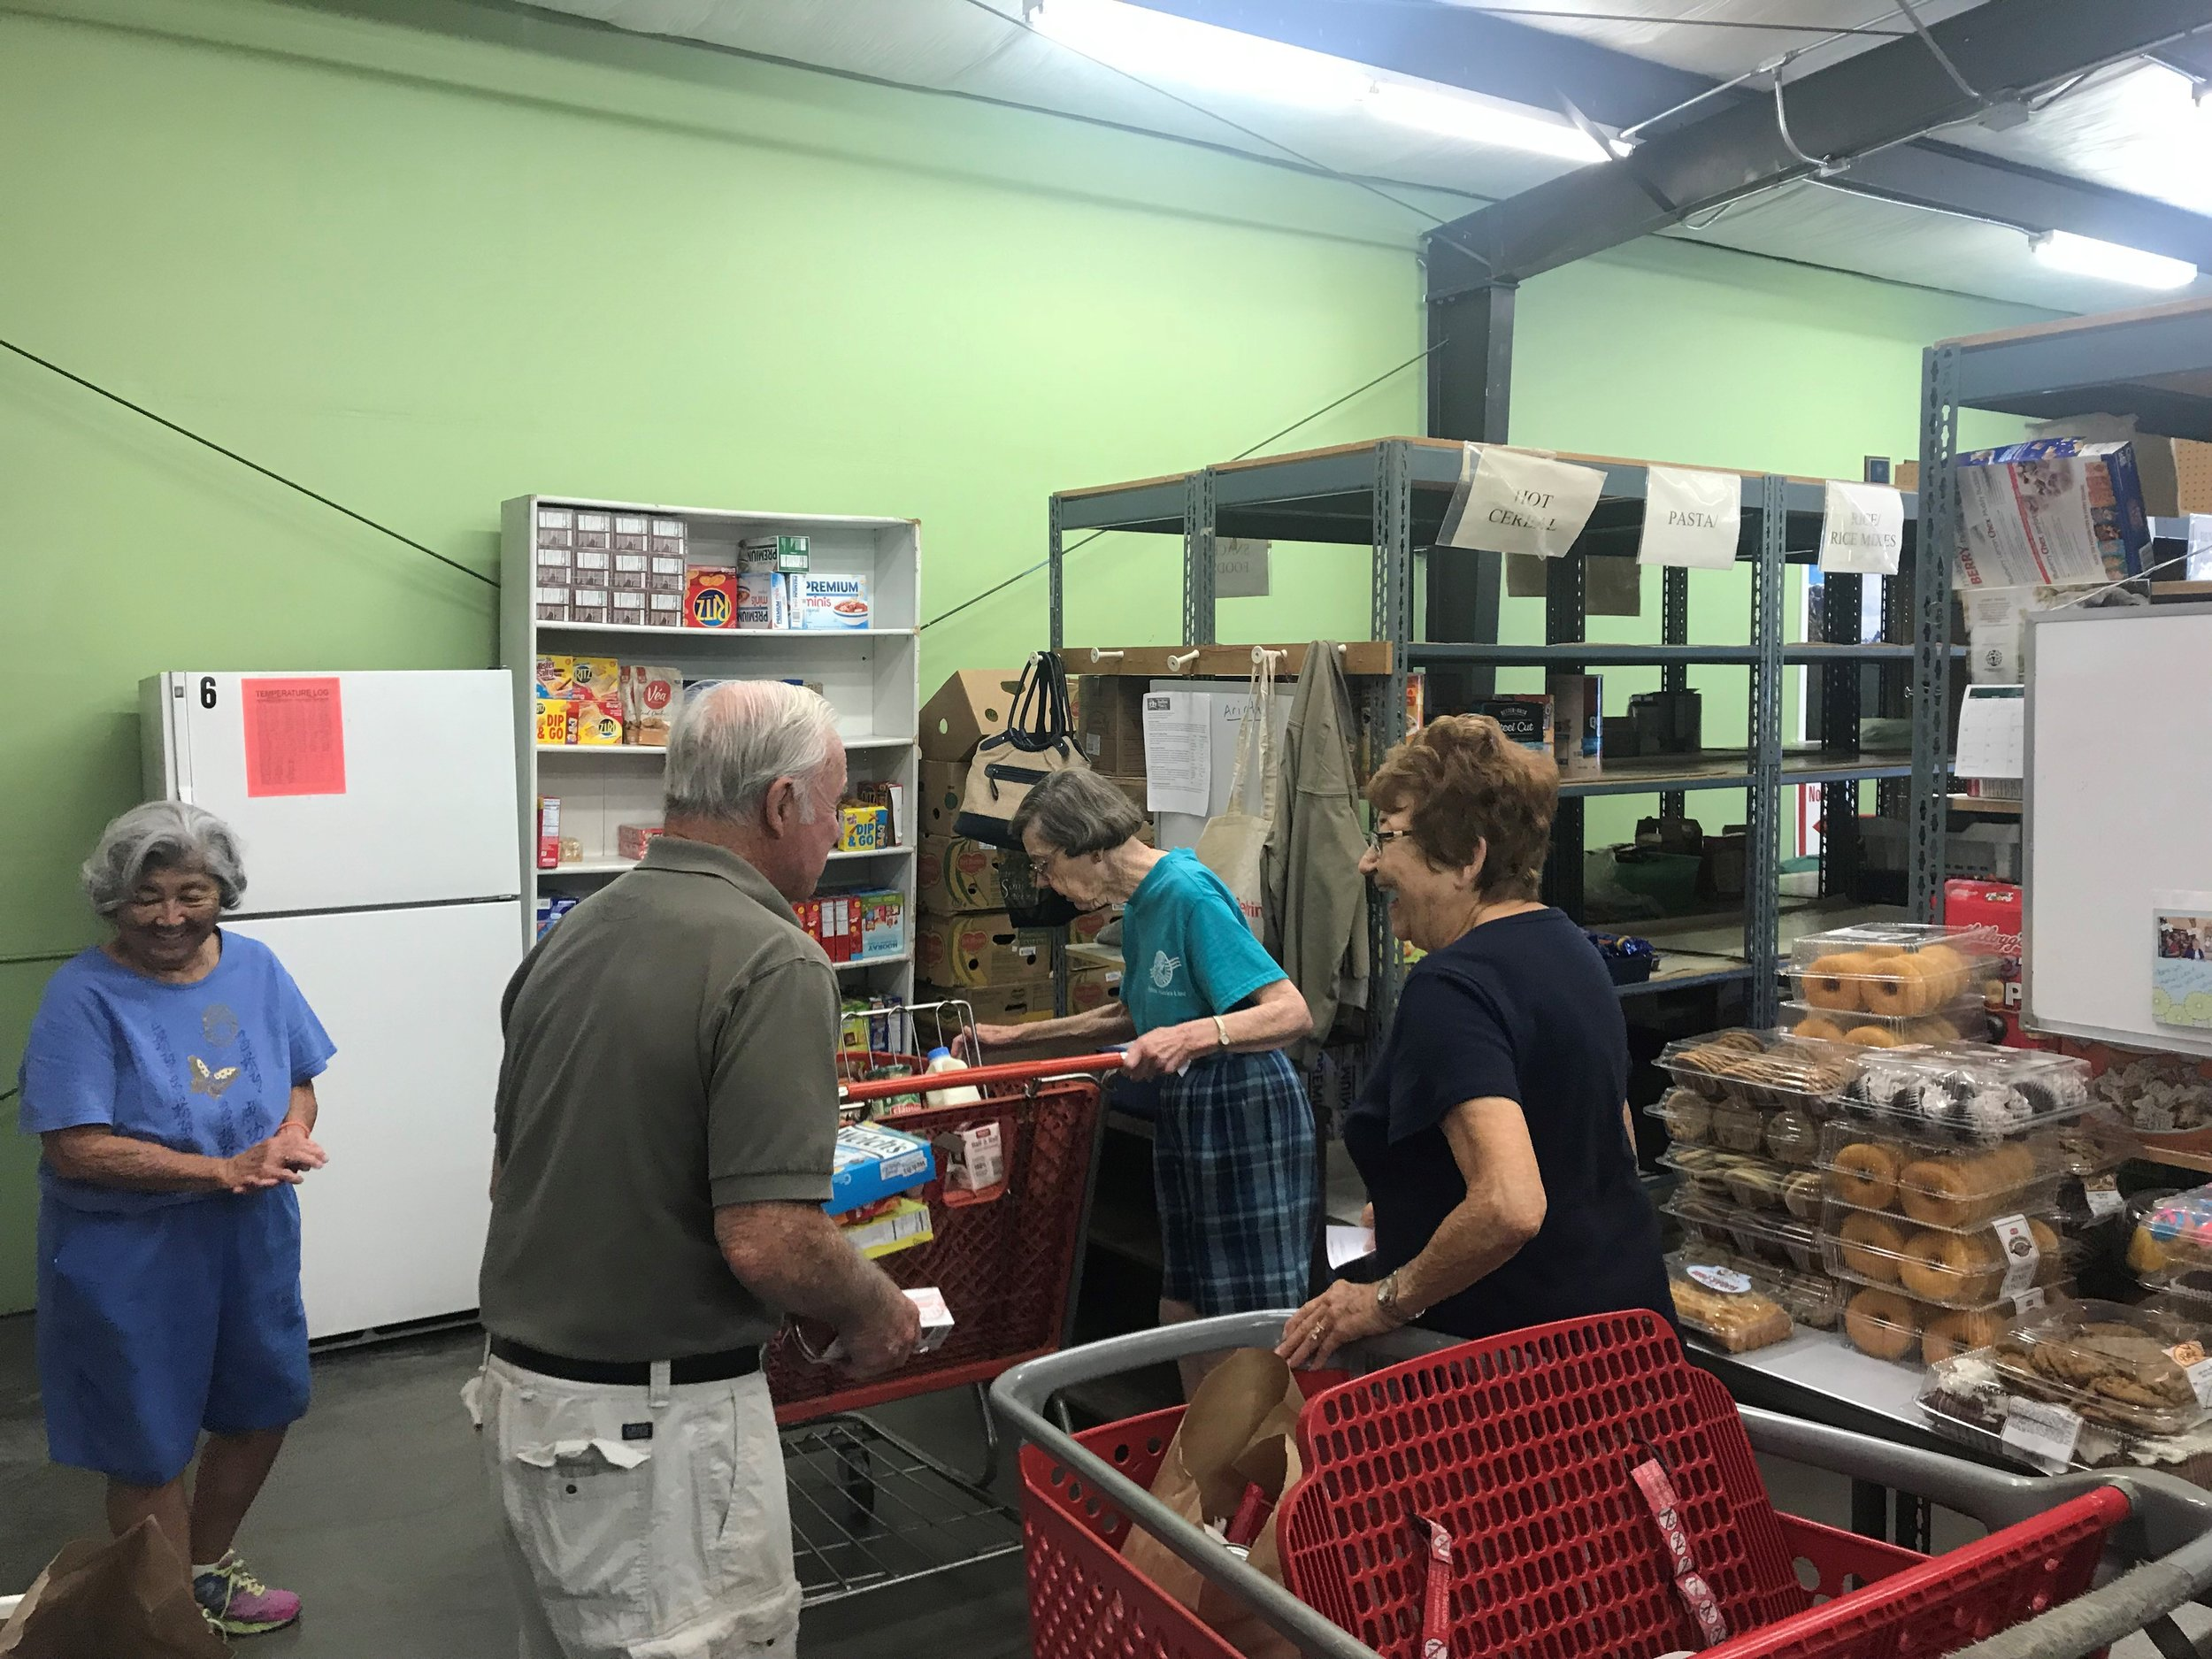 Volunteer shoppers cruise the food aisles selecting items for families.